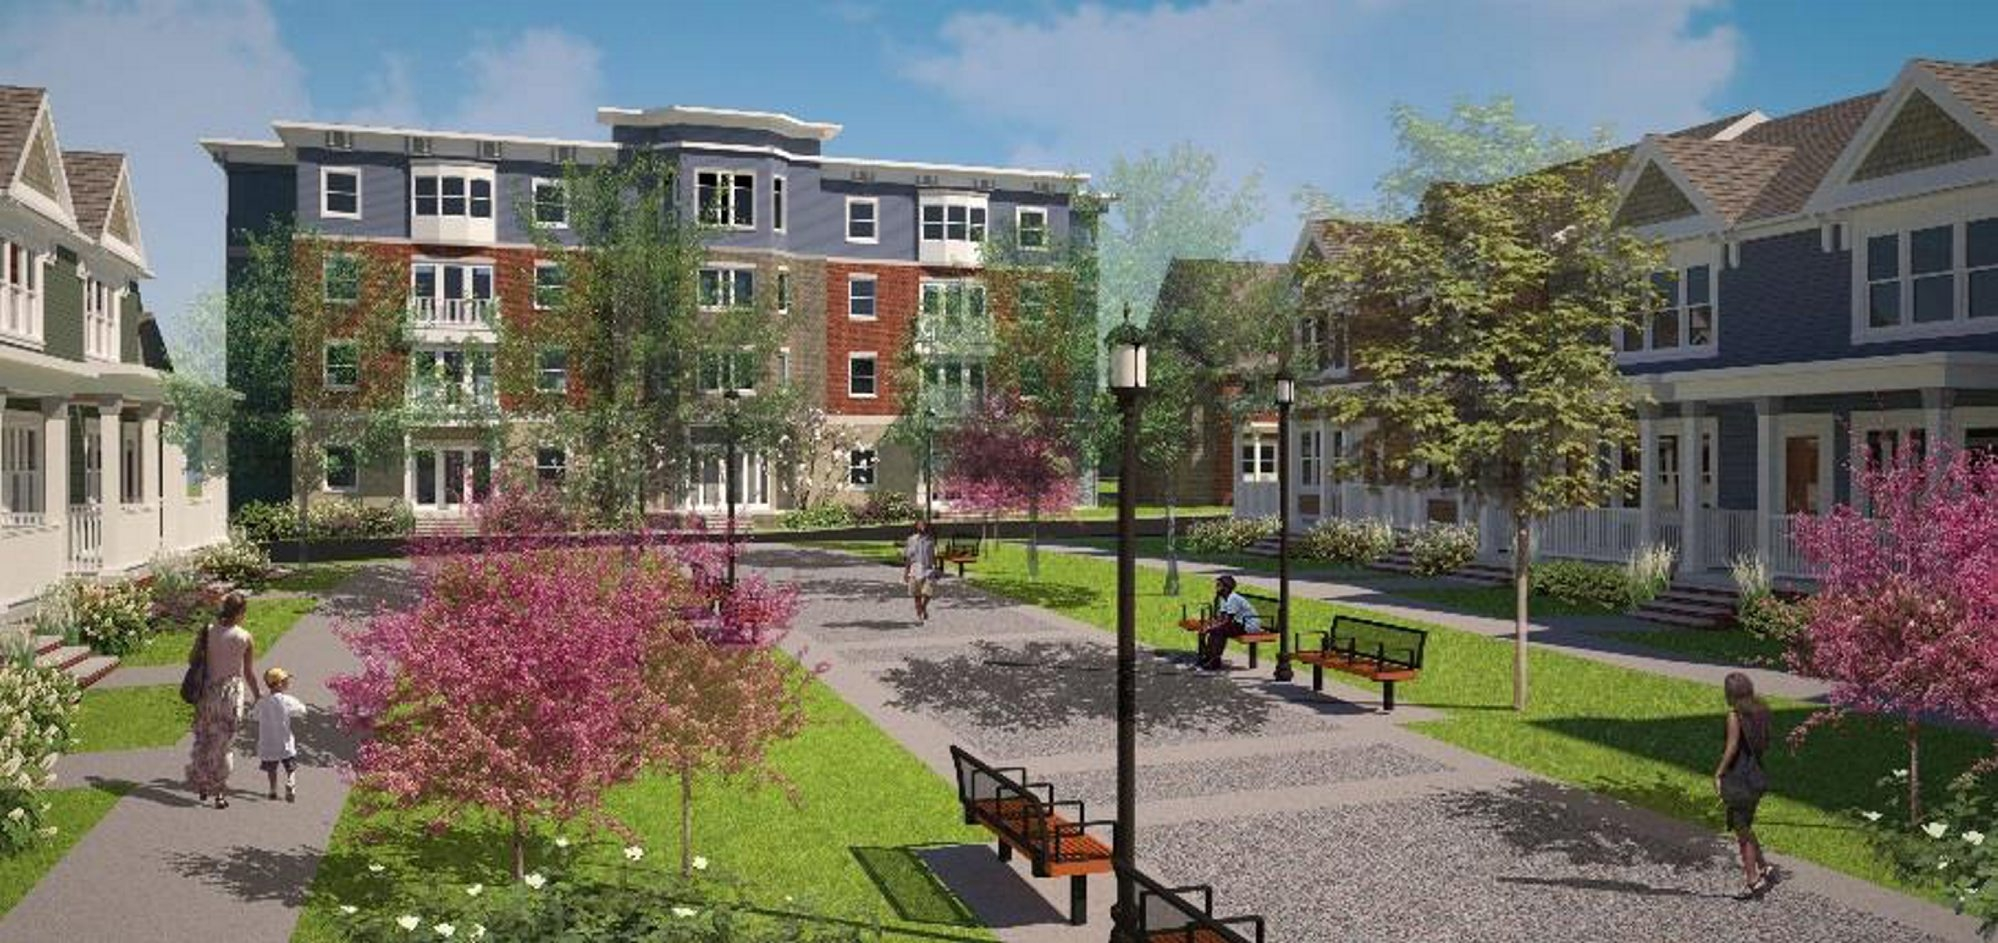 An architect's rendering of the proposed housing development on the old Central Park Plaza site.